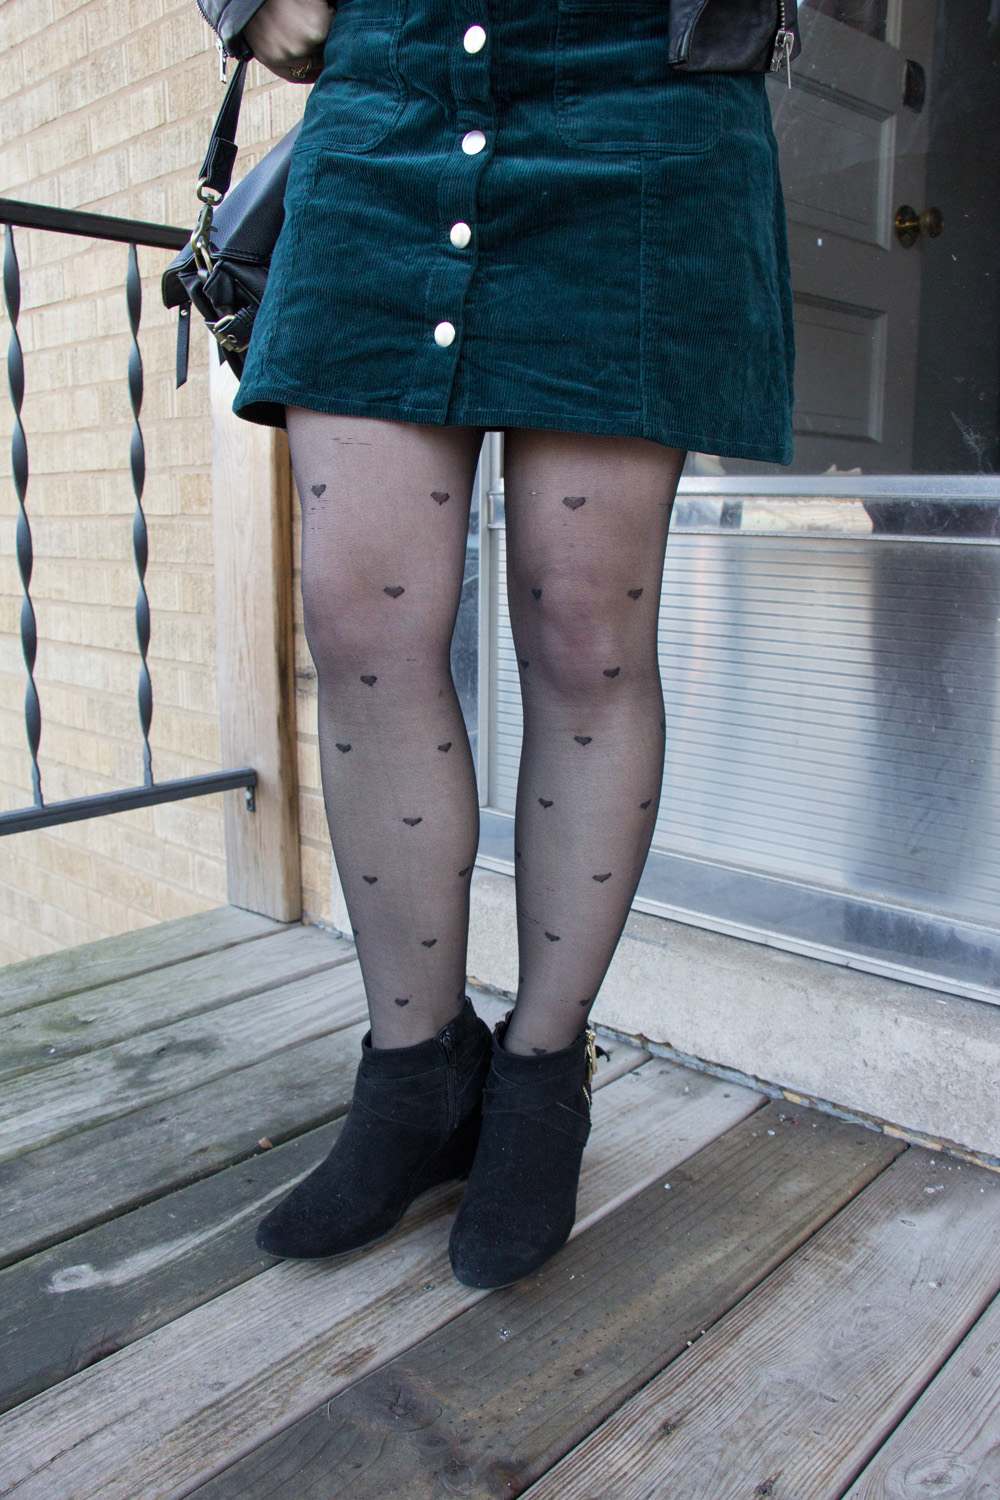 Tiny Heart Print Tights, Green Corduroy Skirt, Black Ankle Boots